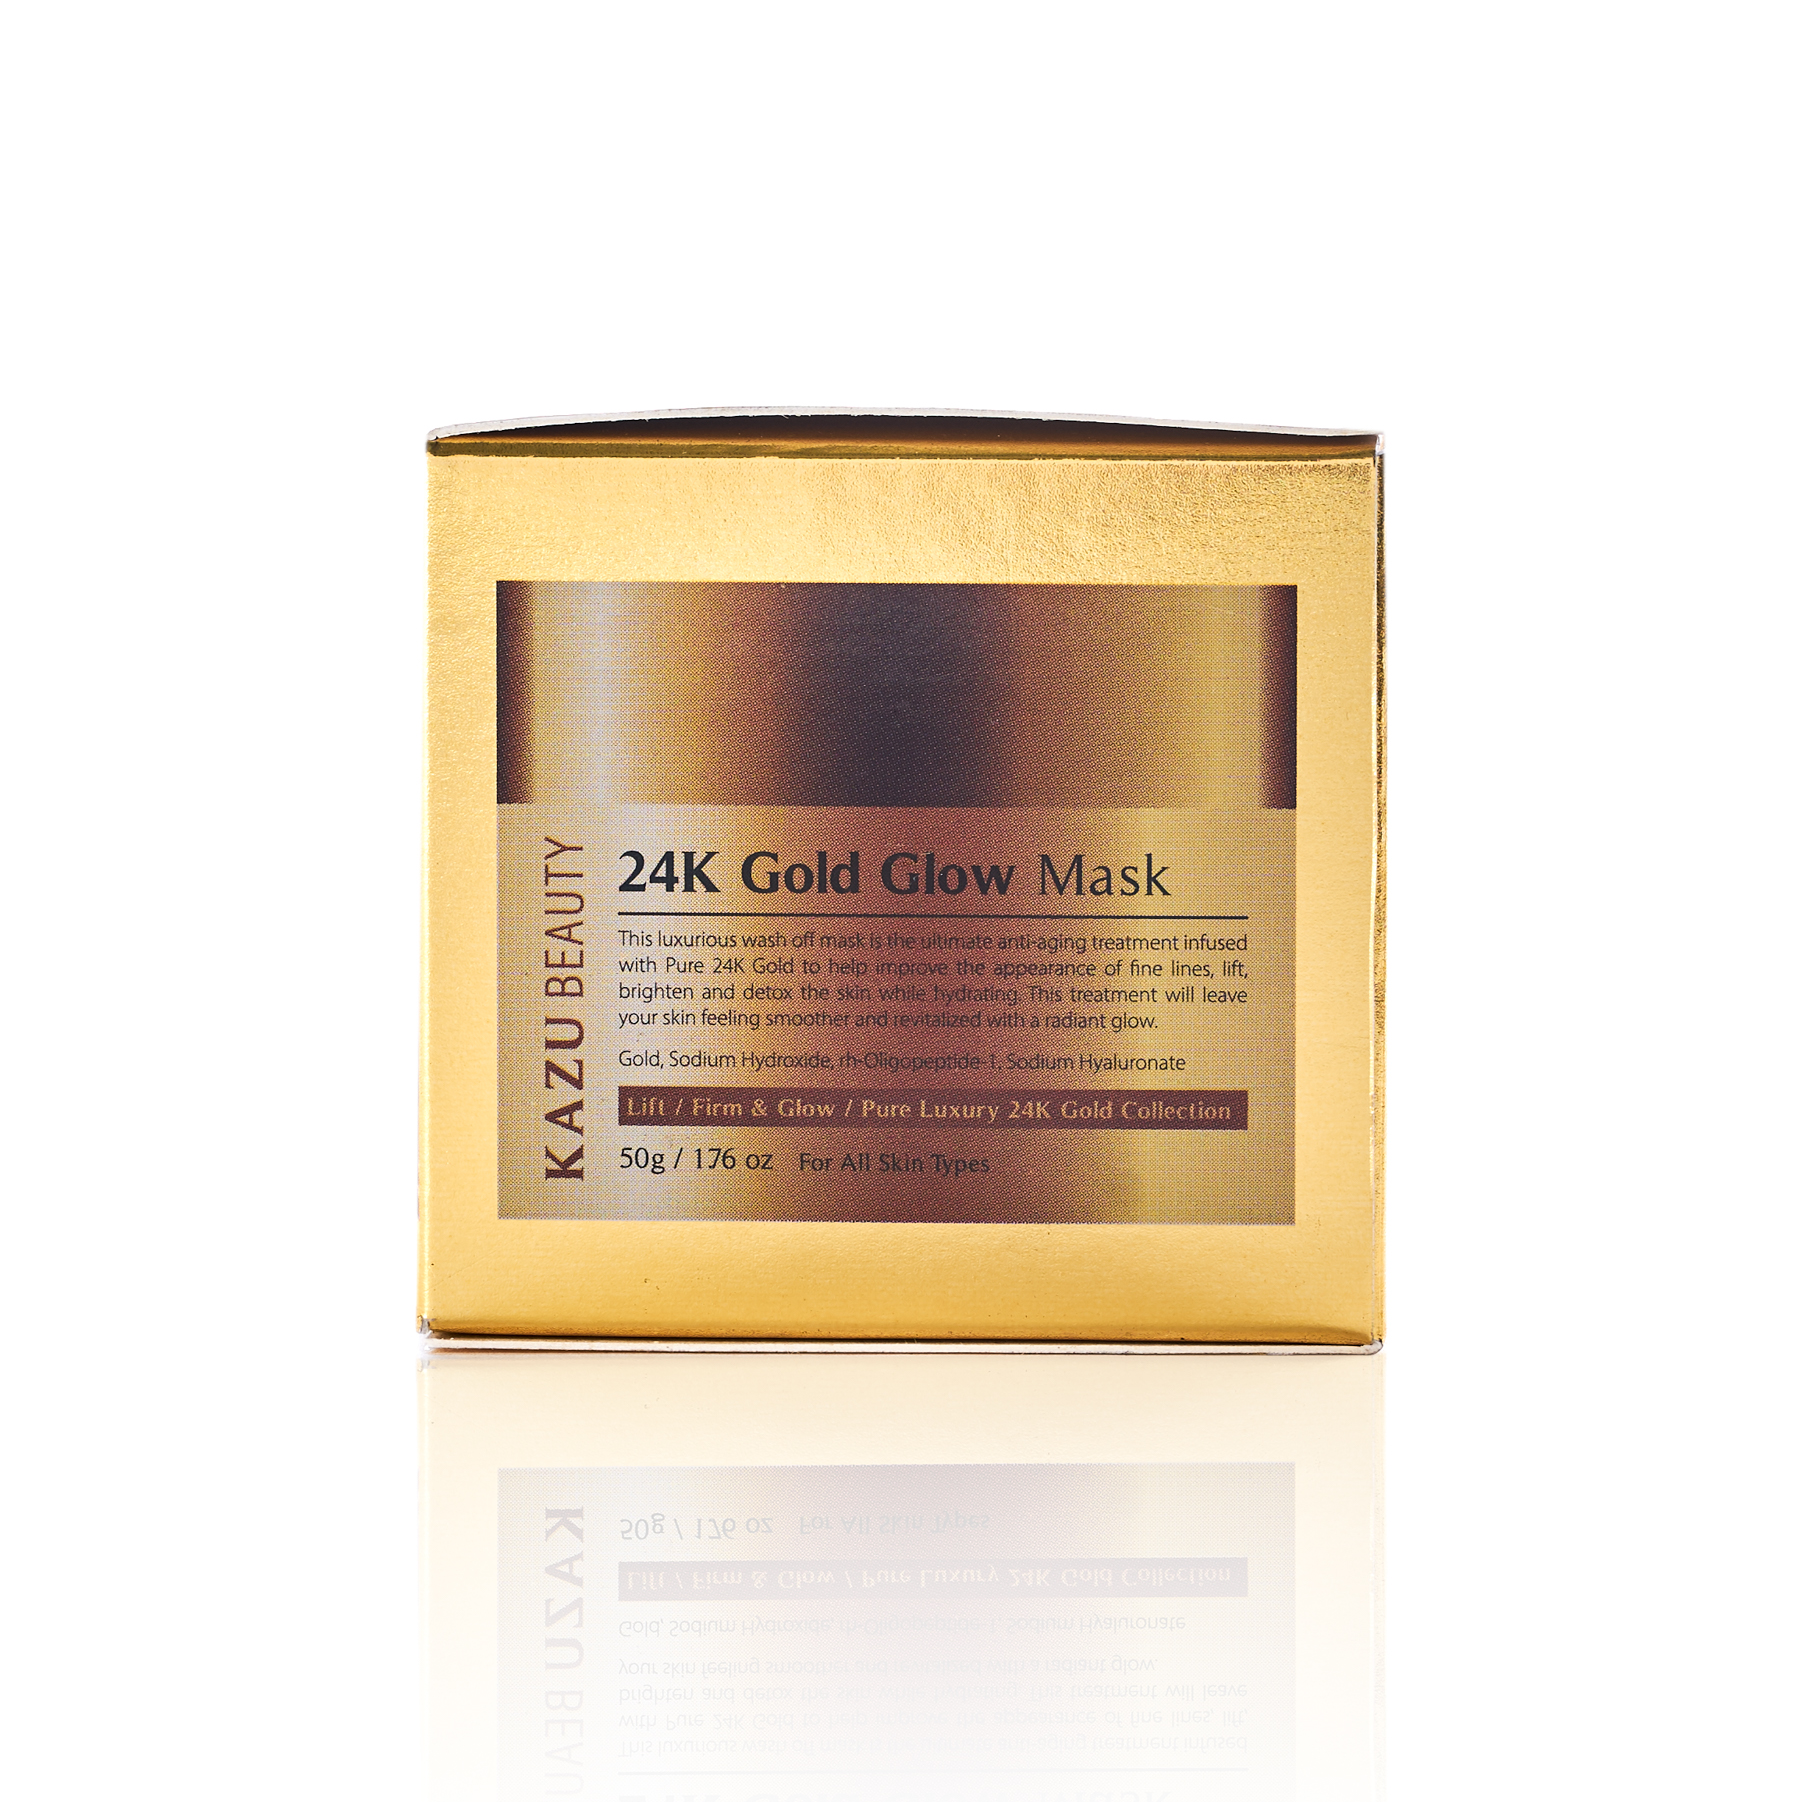 KAZU Beauty 24k Gold Glow Mask box side angle